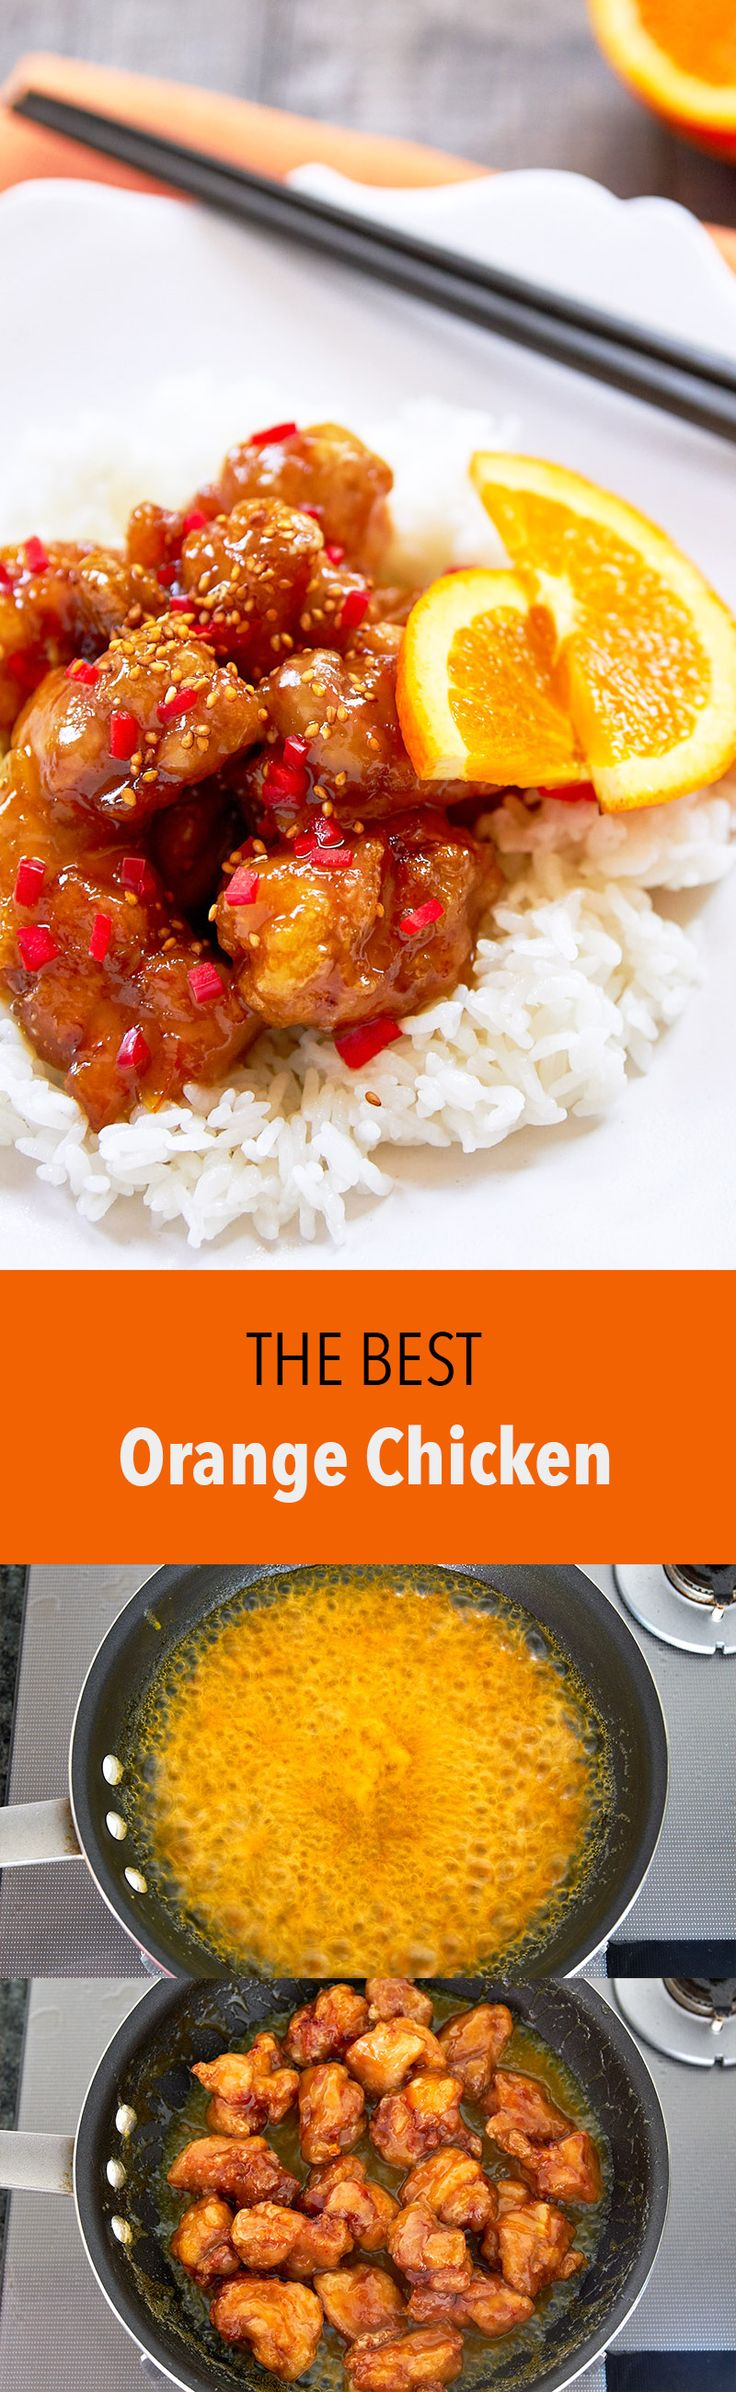 With orange juice, marmalade and orange zest in the sauce and big juicy pieces of ginger marinated chicken, this easy Orange Chicken beats take-out Chinese.